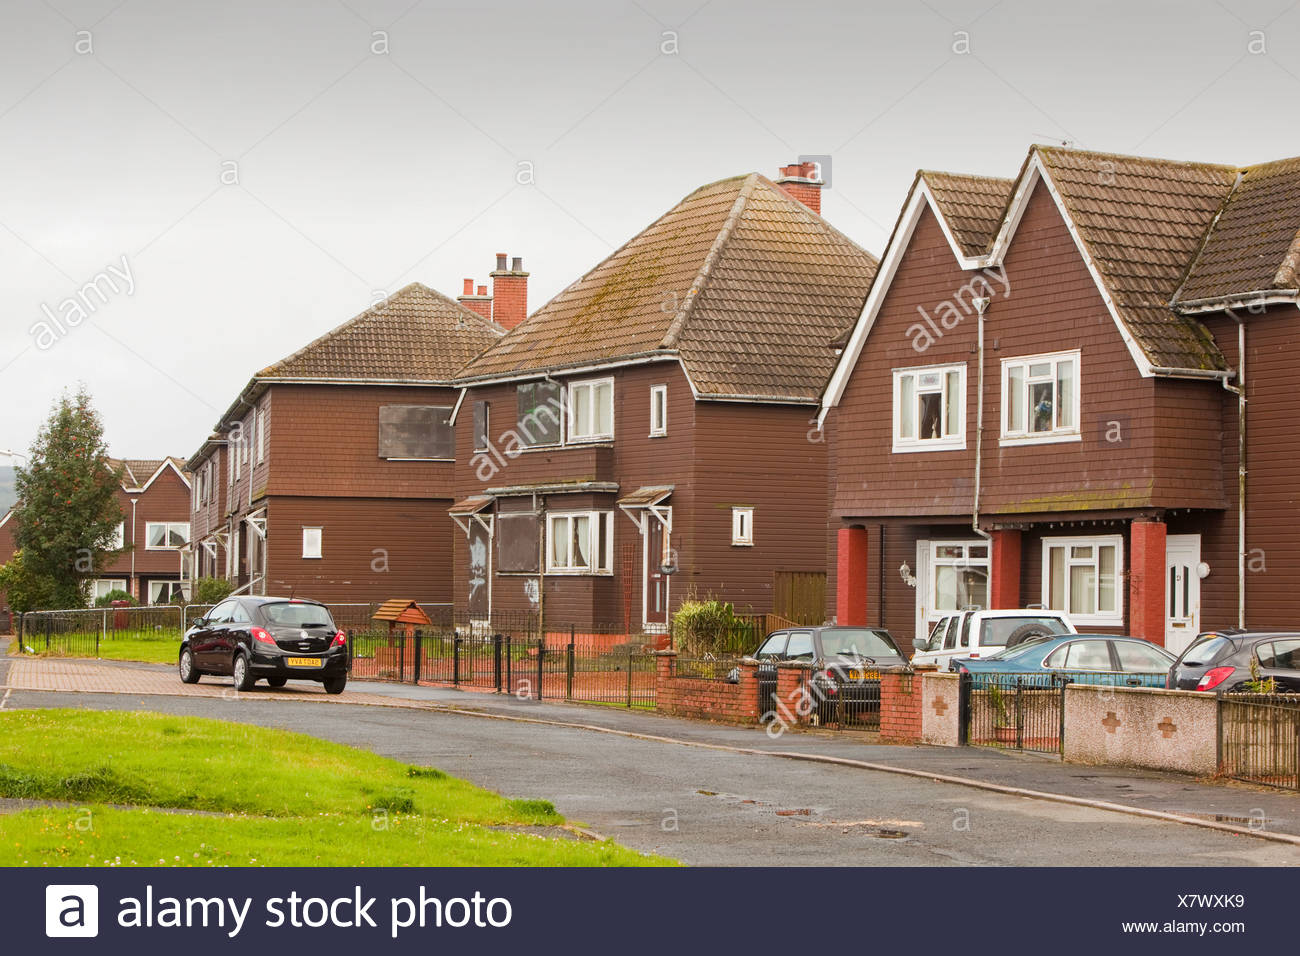 houses in Coalburn, Lanarkshire, UK being compulsory purchased to demolished to make way for another open cast coal mine - Stock Image